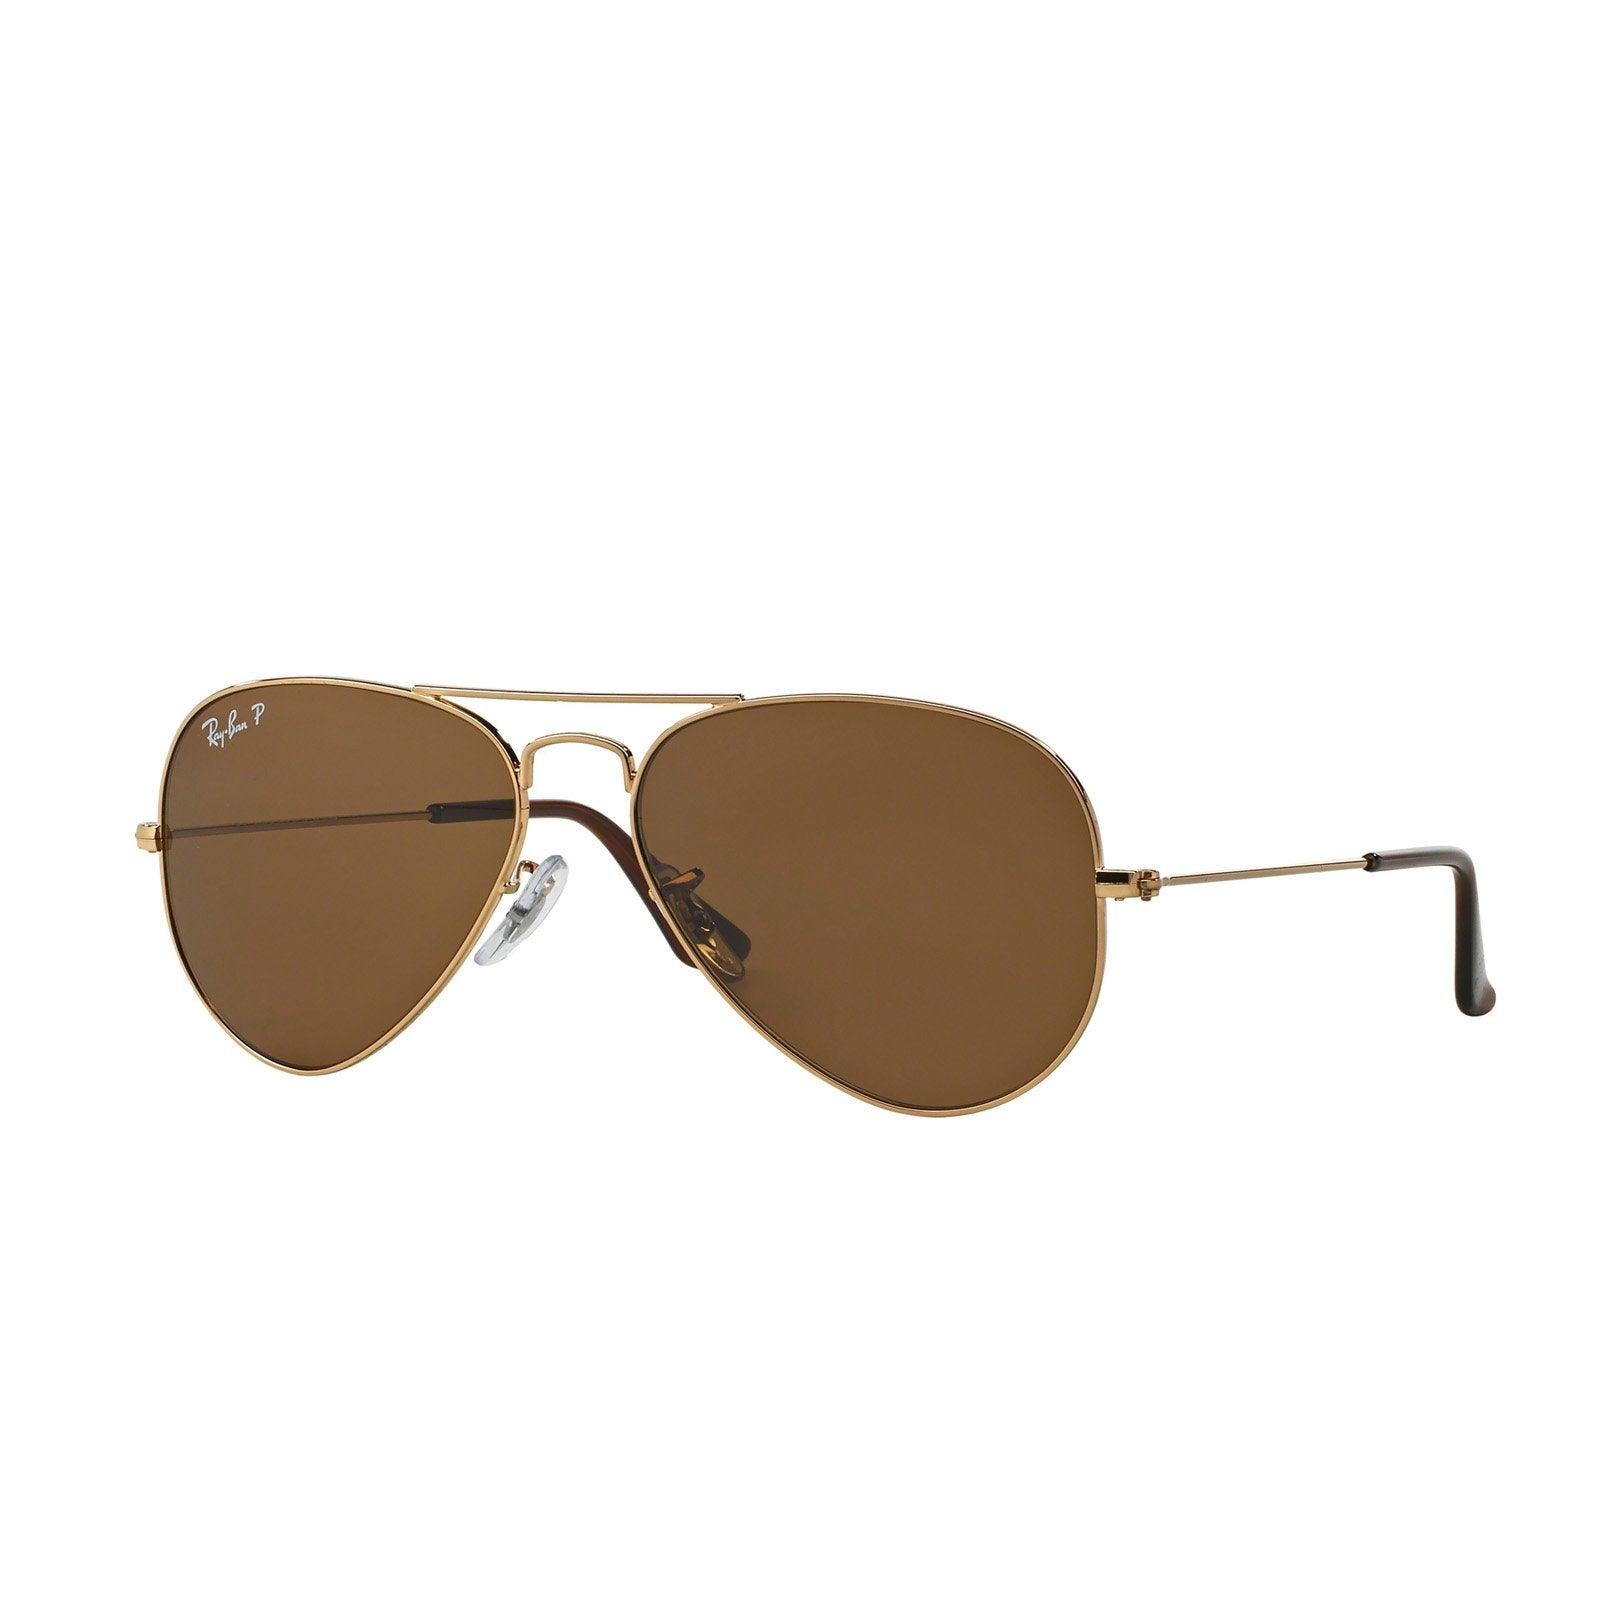 Ray-Ban RB3025 001/57 Sunglasses